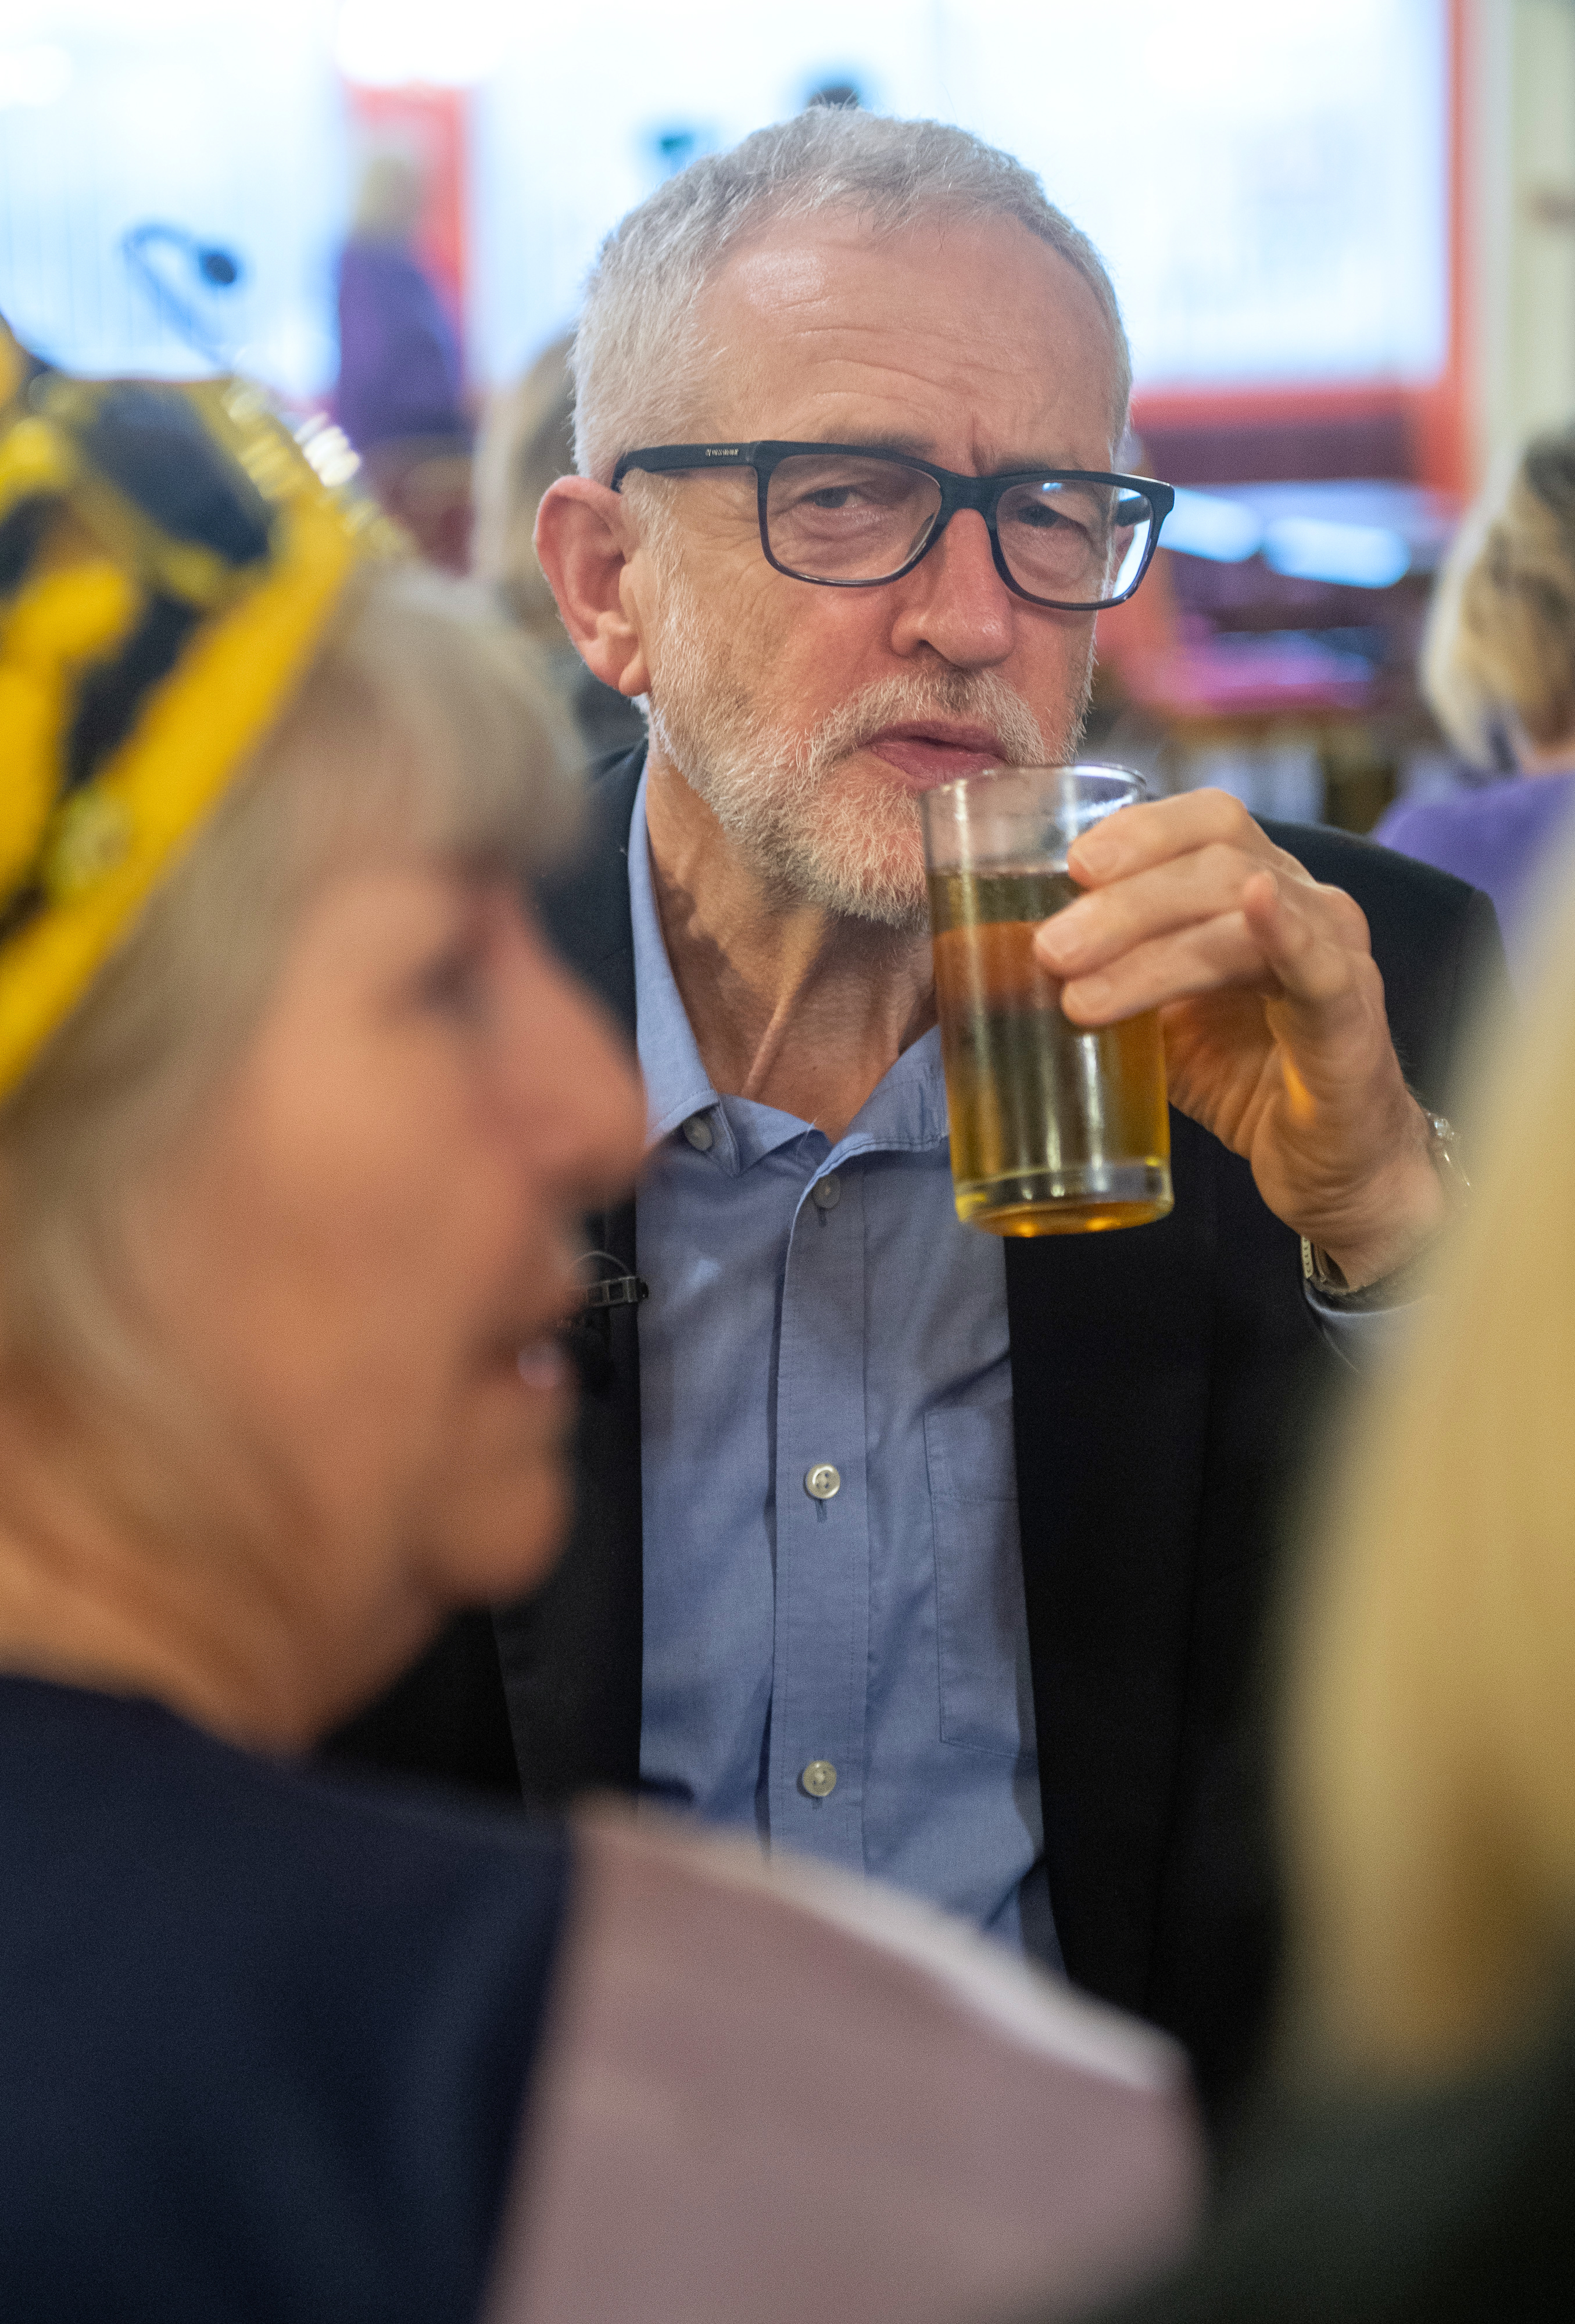 Labour Party leader Jeremy Corbyn drinks an energy drink as he speaks with a group of WASPI (Women against state pension inequality) supporters during a visit to the Renishaw Miners Welfare, in Renishaw, Sheffield, whilst on the General Election campaign trail.